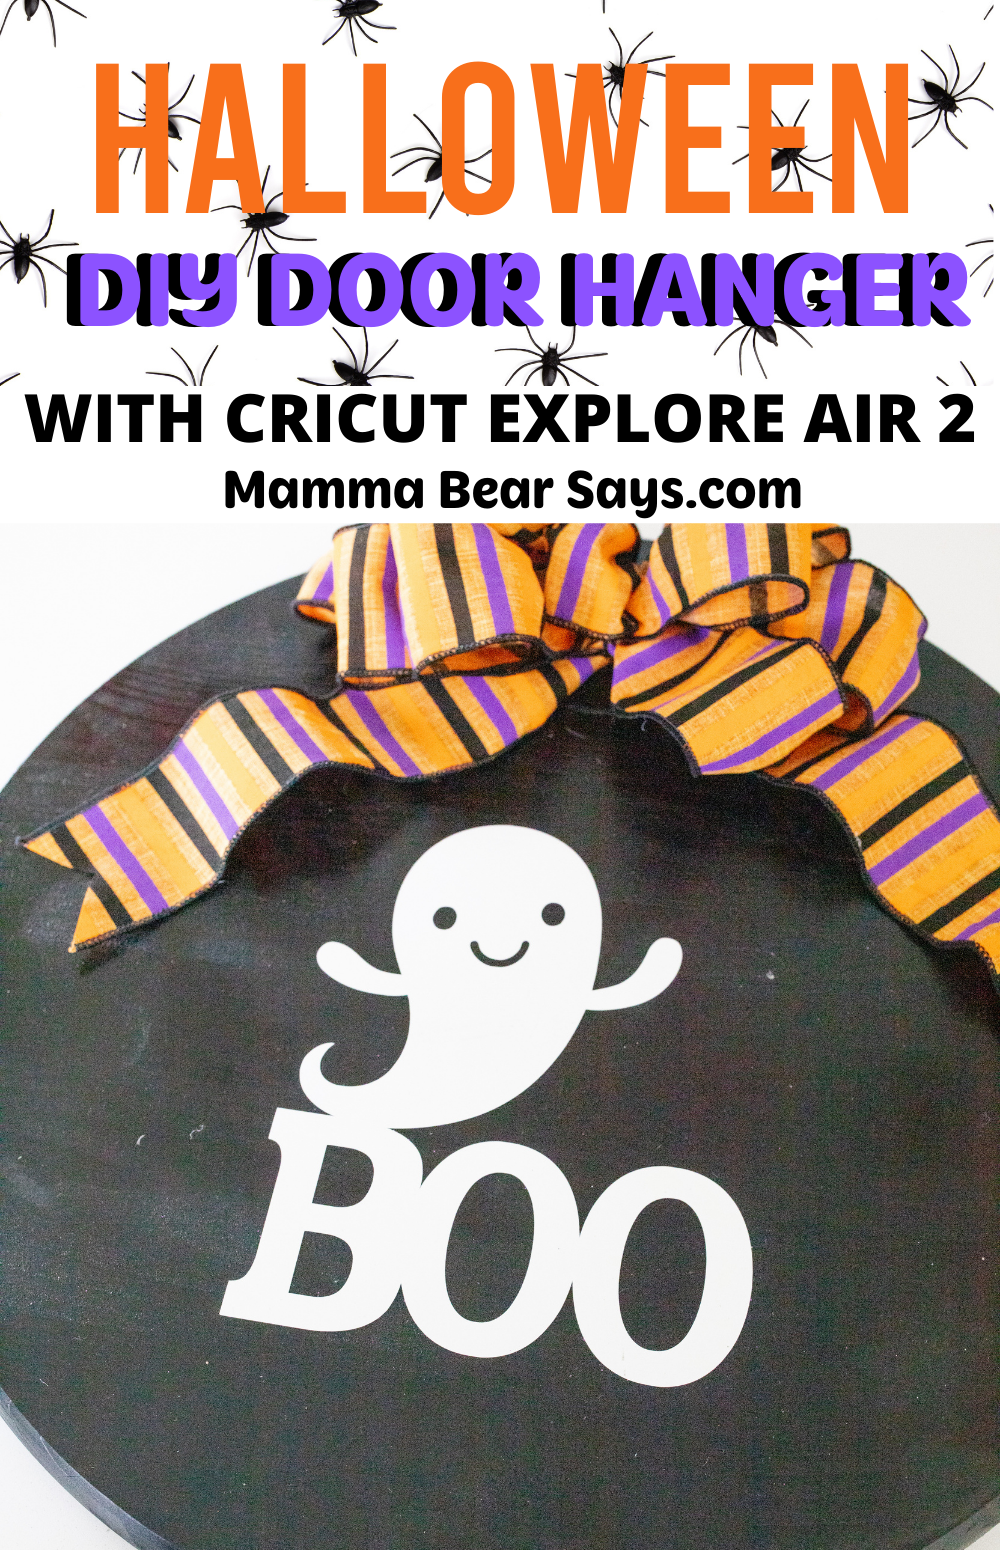 This Halloween Door Hanger Tutorial is so easy to follow! You can make a beautiful front door piece in a few simple steps! I always wanted to theme my front door and now I can bring the Halloween to my porch! With the help of my Cricut Explore Air 2 I can make this and so much more! #Halloween #HalloweenDecorations #Halloweentime #halloween2020 #diyhalloween #halloweendiy #diydecor #diydecorations #diy #diycraft #cricutmade #cricutcreated #cricutcraft